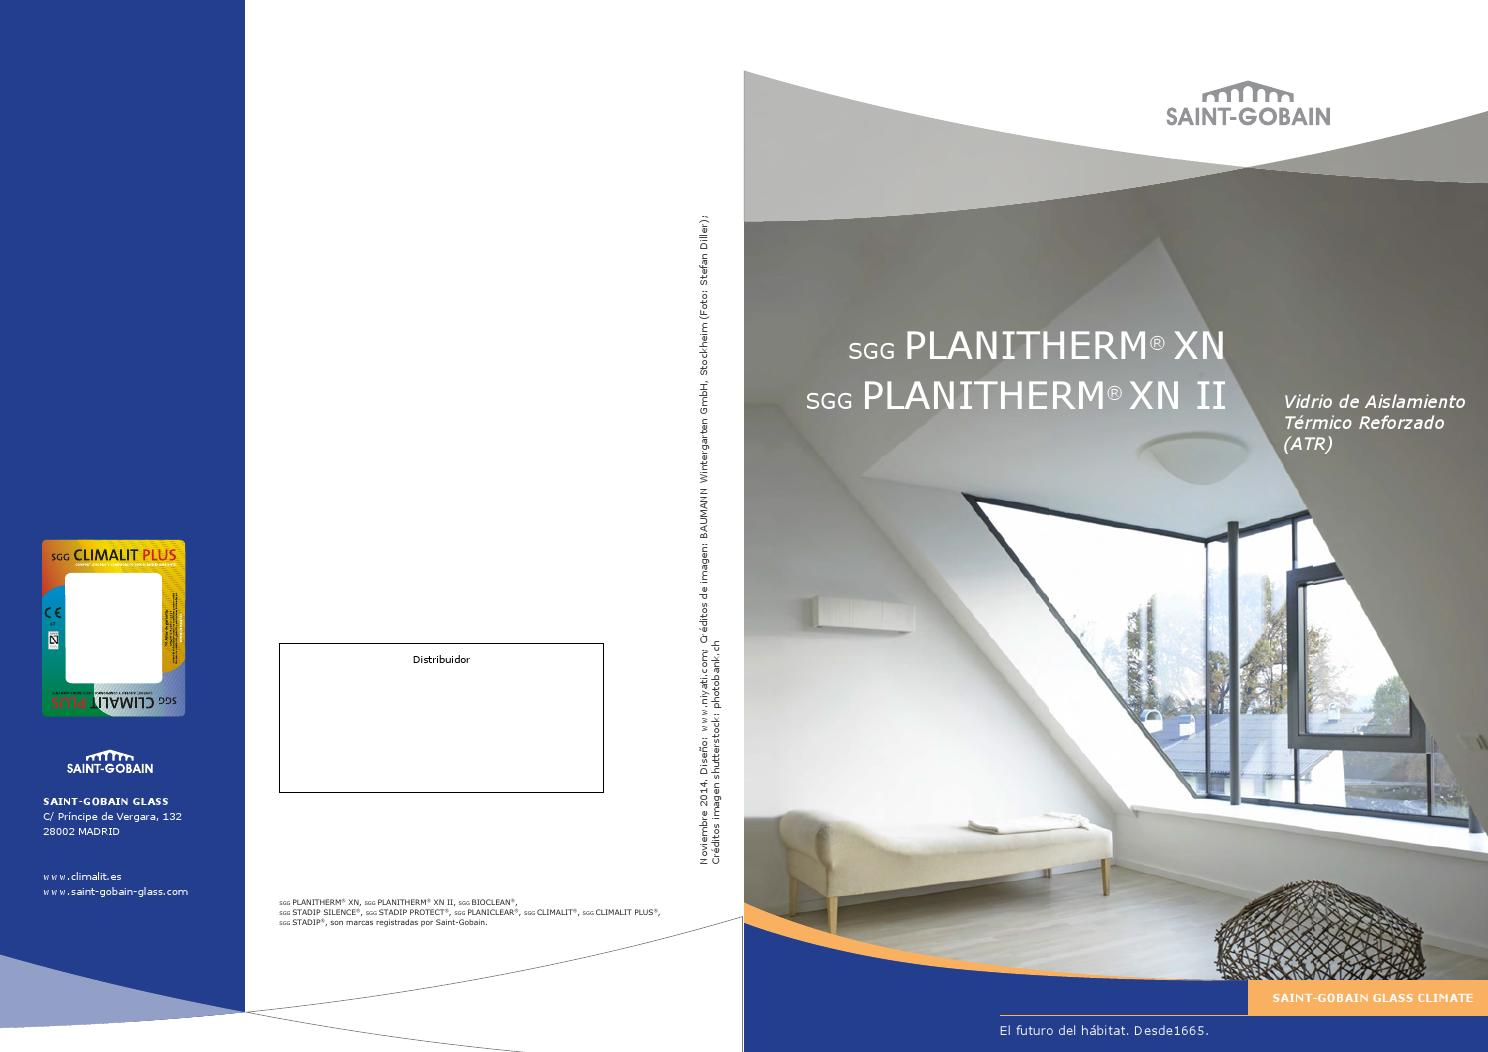 Climalit Plus Silence Sgg Planitherm Xn By Aluminiosdelsur Issuu